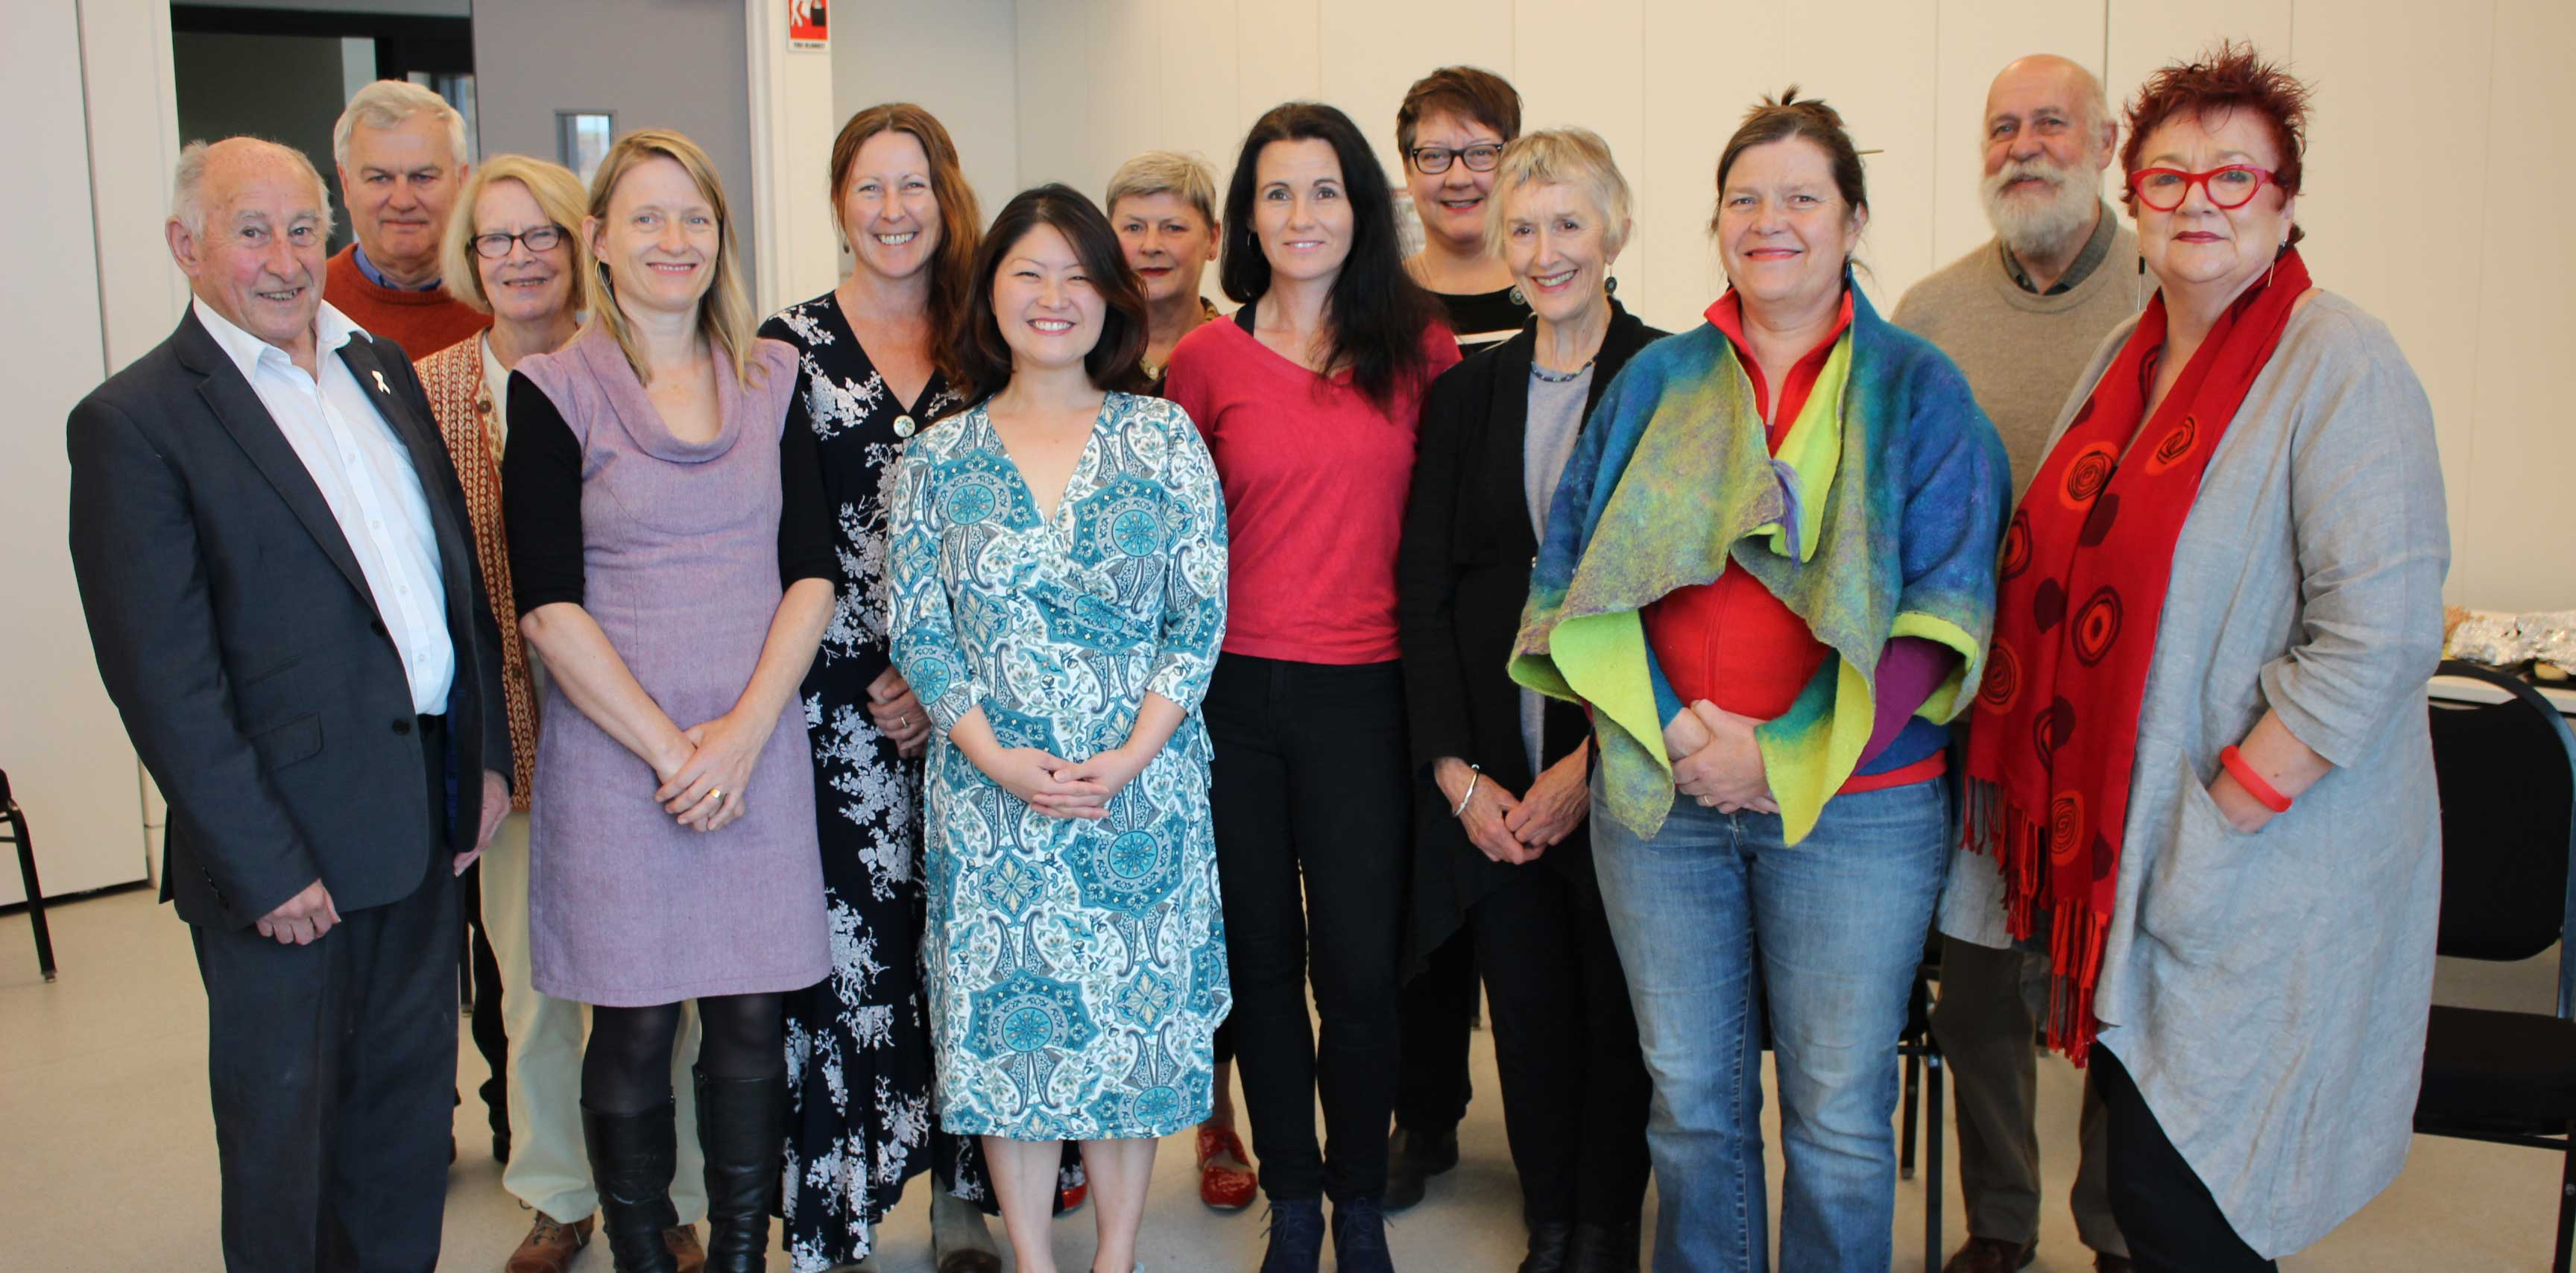 Councillor and Chair Don McGregor with Advisory Committee members and grant partners Alex Gooding;  Jenny Day, Veechi Stuart, Camille Walsh, Grace Kim, Faye Wilson Jo Clancy, Tracy Miles, Margaret Davis, Saskia Everingham, Peter Shoemark and Julie Ankers.